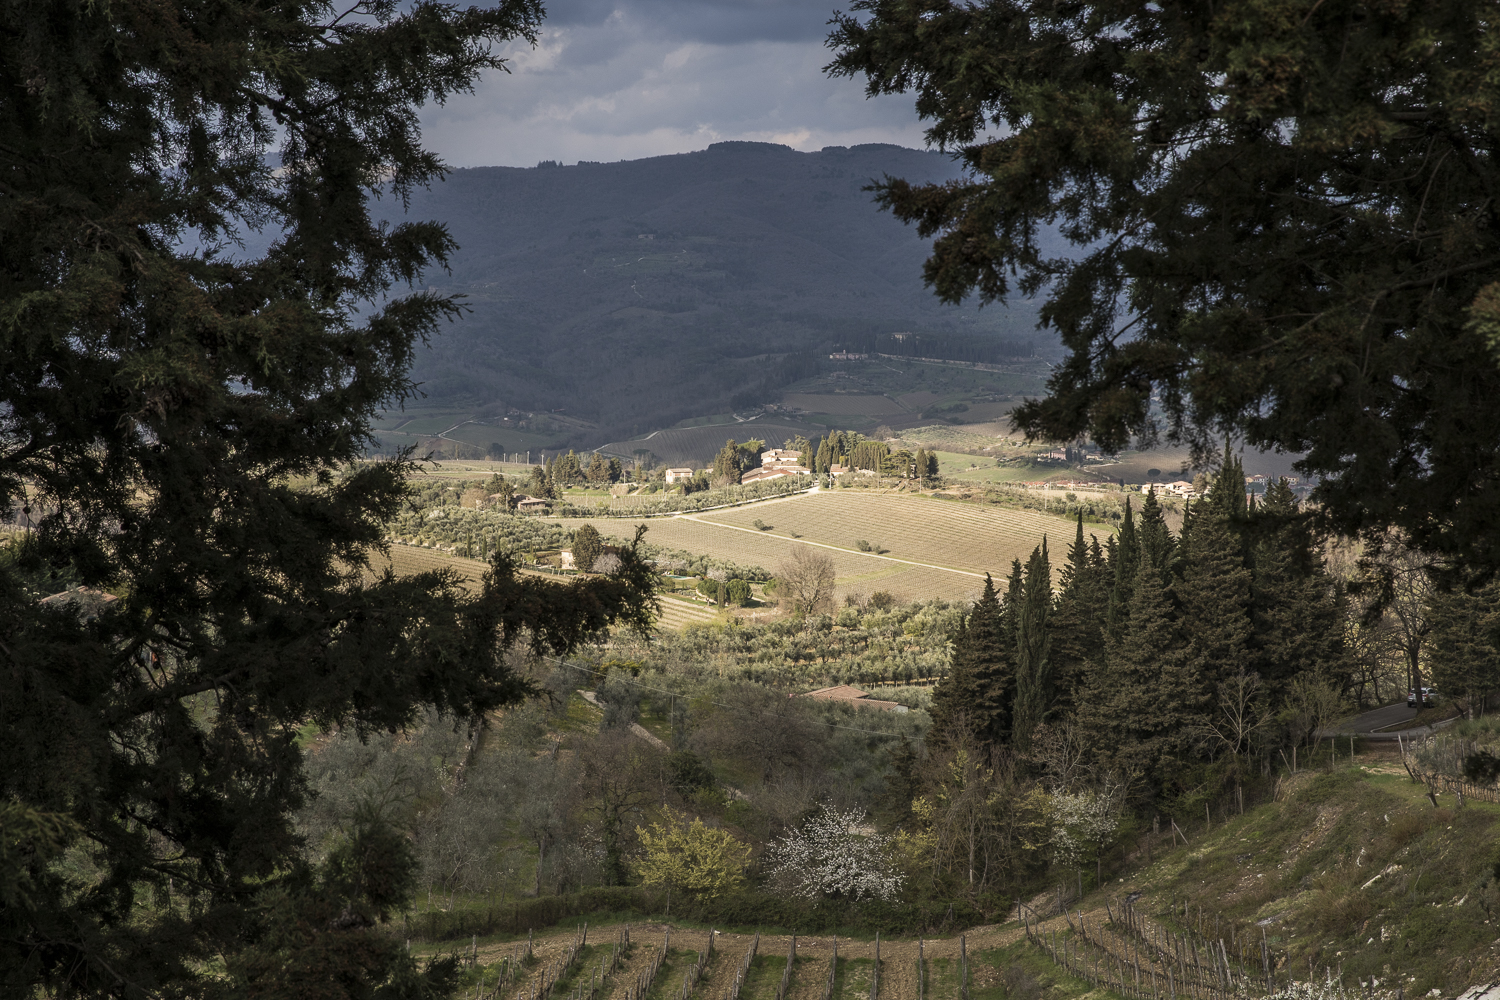 Sunlight breaks through the clouds to illuminate grape vines in Chianti Classico.